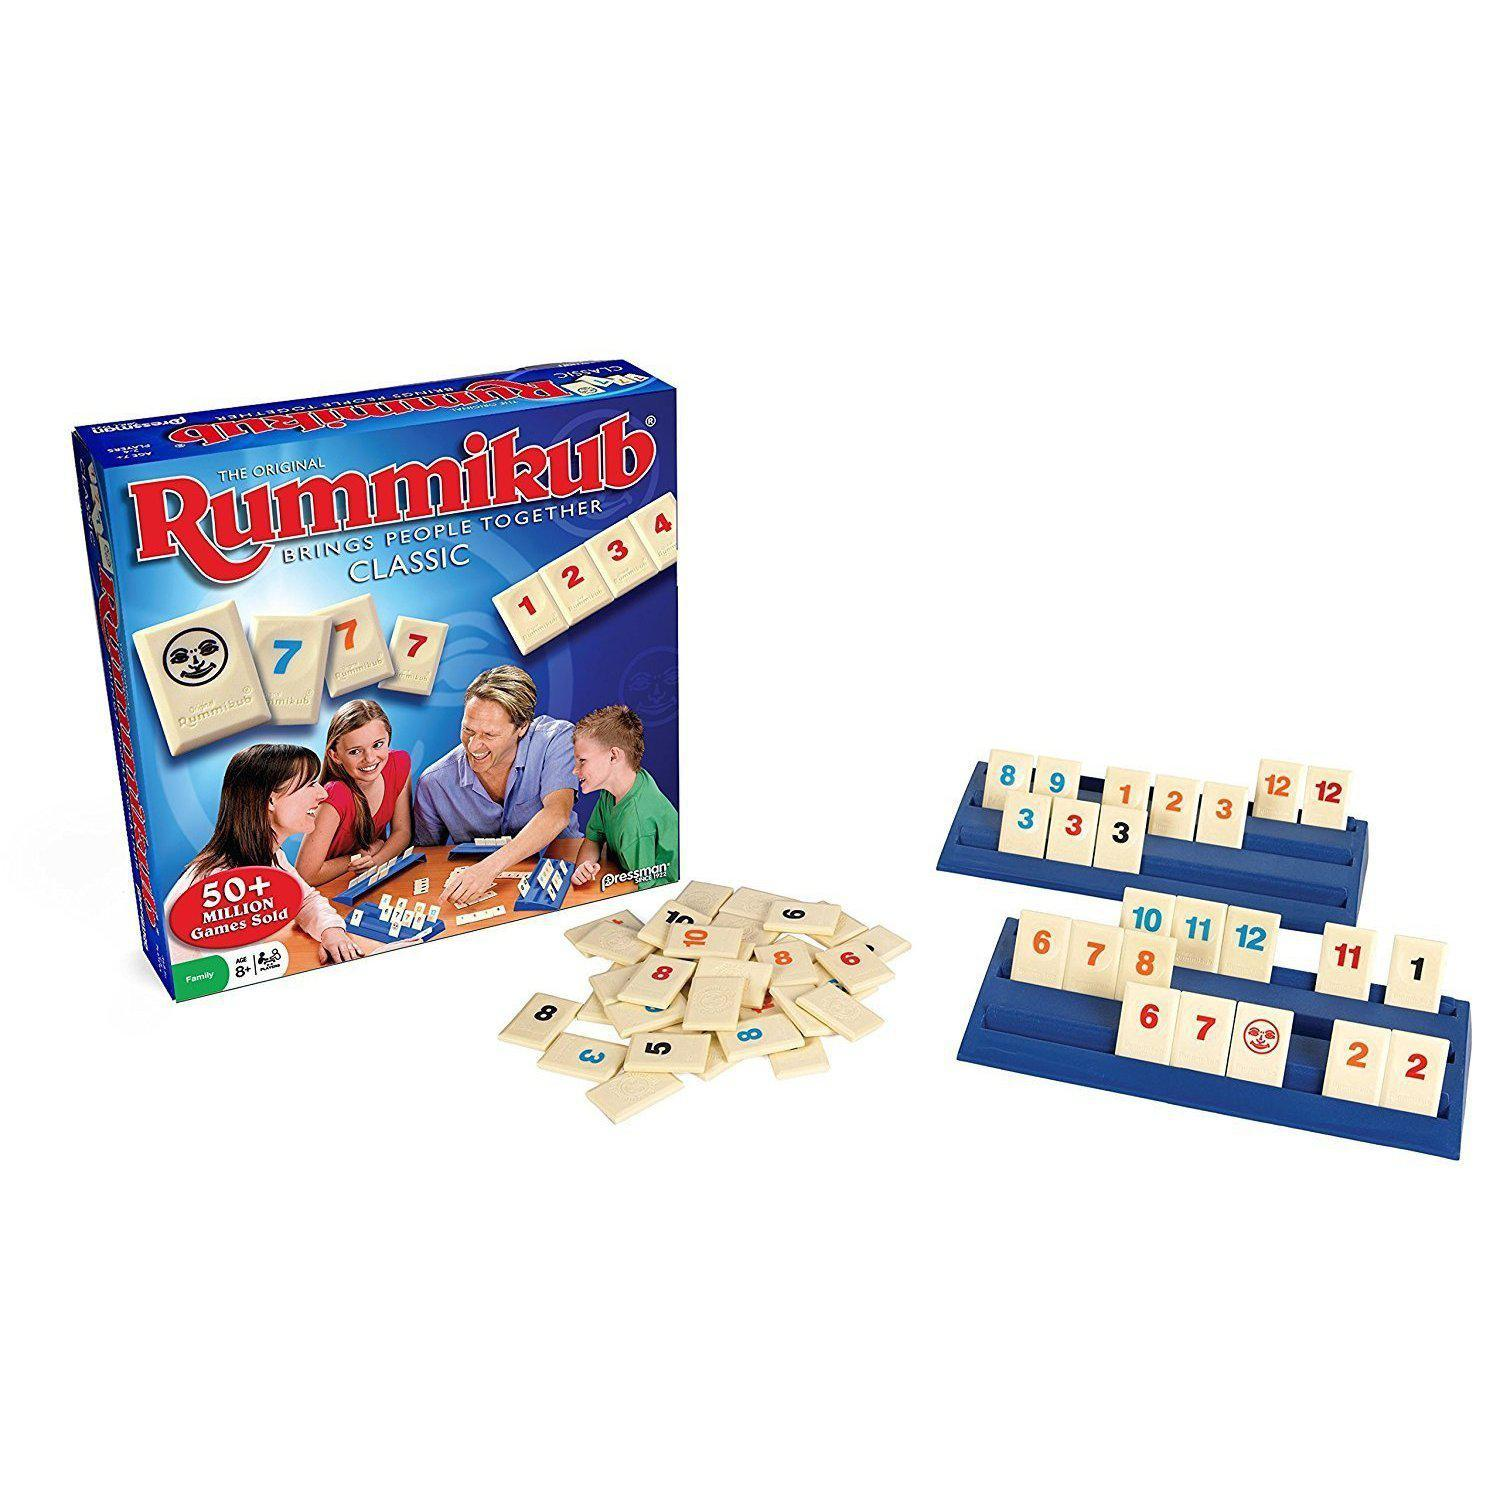 Rummikub Original Game